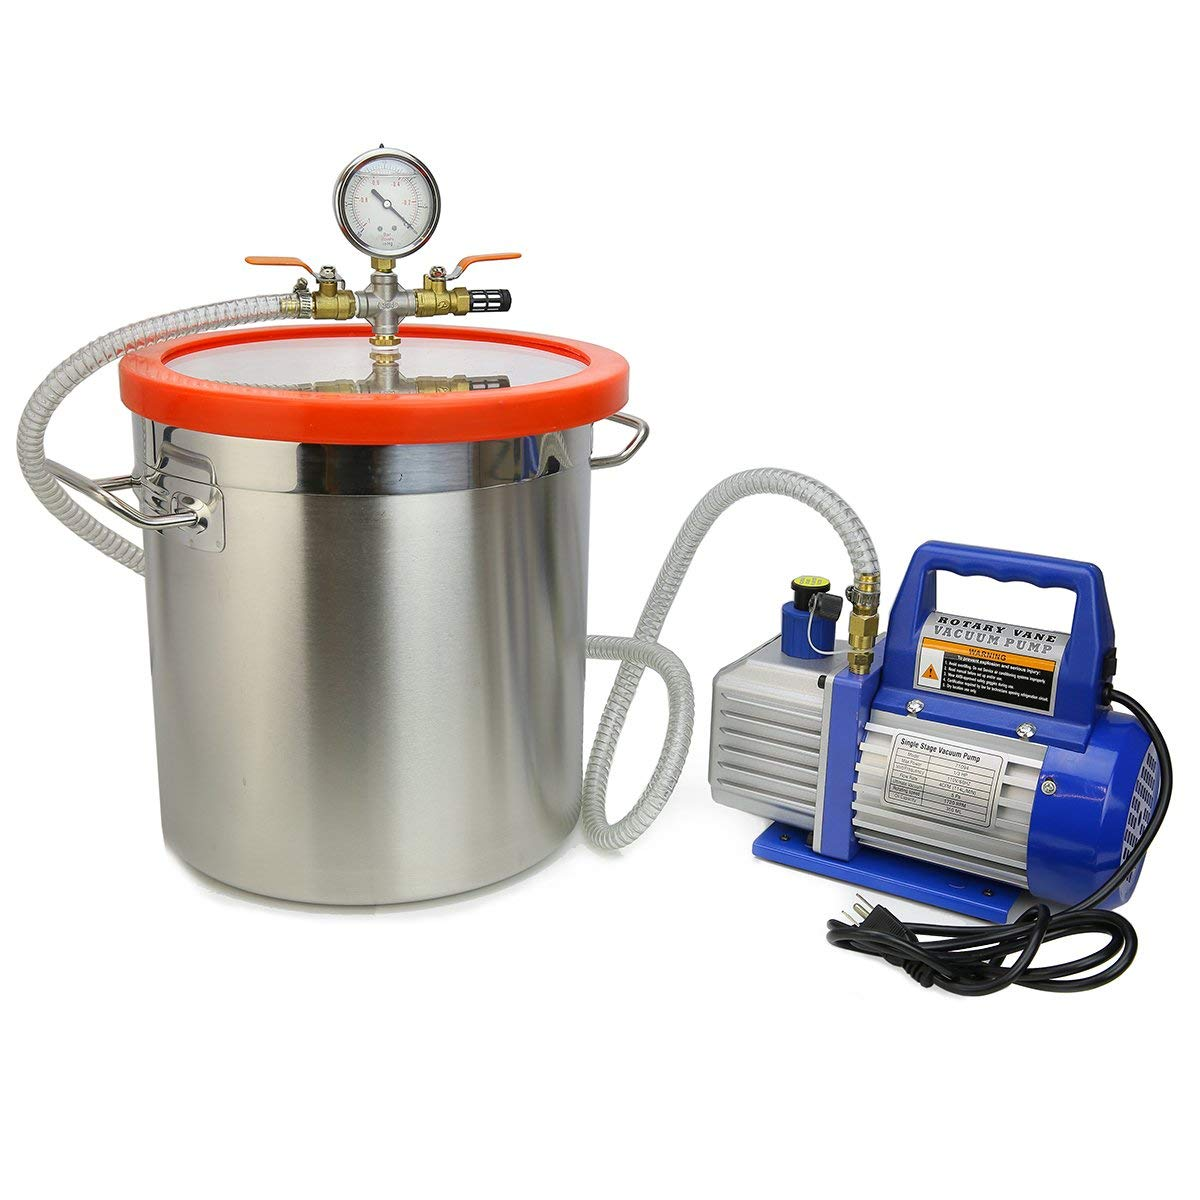 XtremepowerUS Vacuum Pump and Chamber Kit Degass Urethanes, Silicones and Epoxies (5 CFM Two-Stage Vacuum Pump 3 Gallons Chamber)